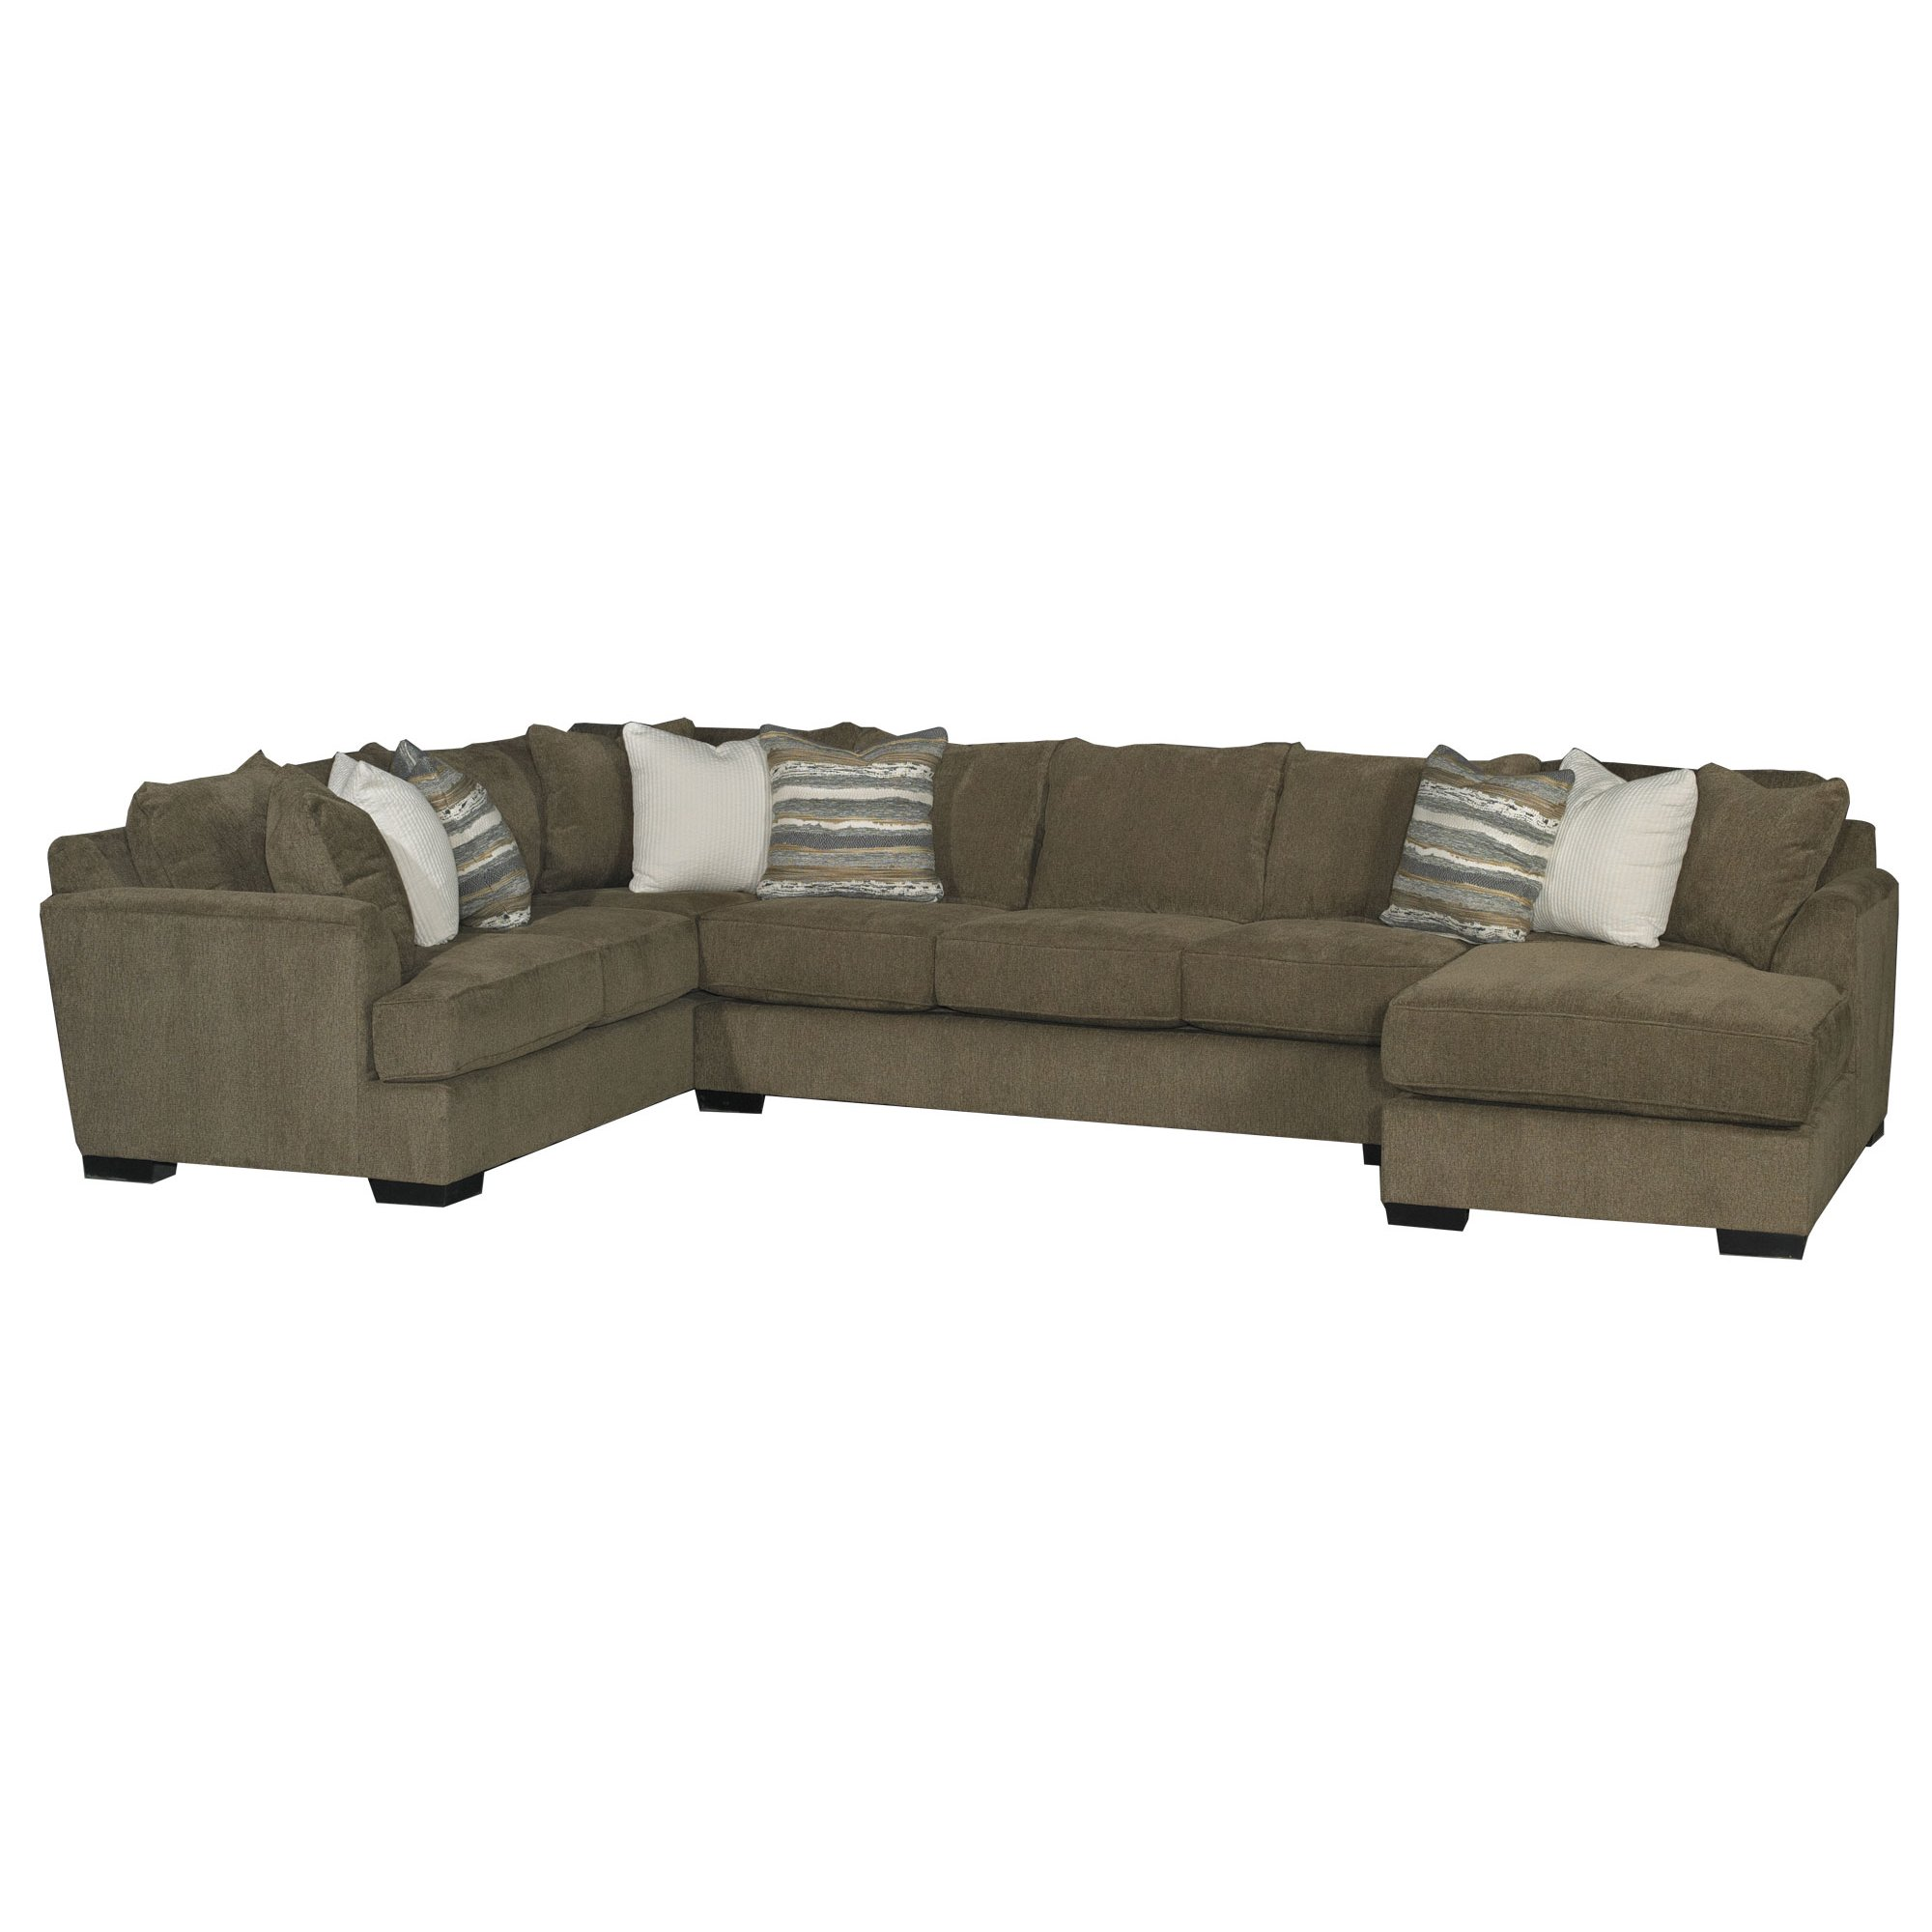 Chocolate Brown 3 Piece Sectional Sofa With Raf Chaise Tranquility